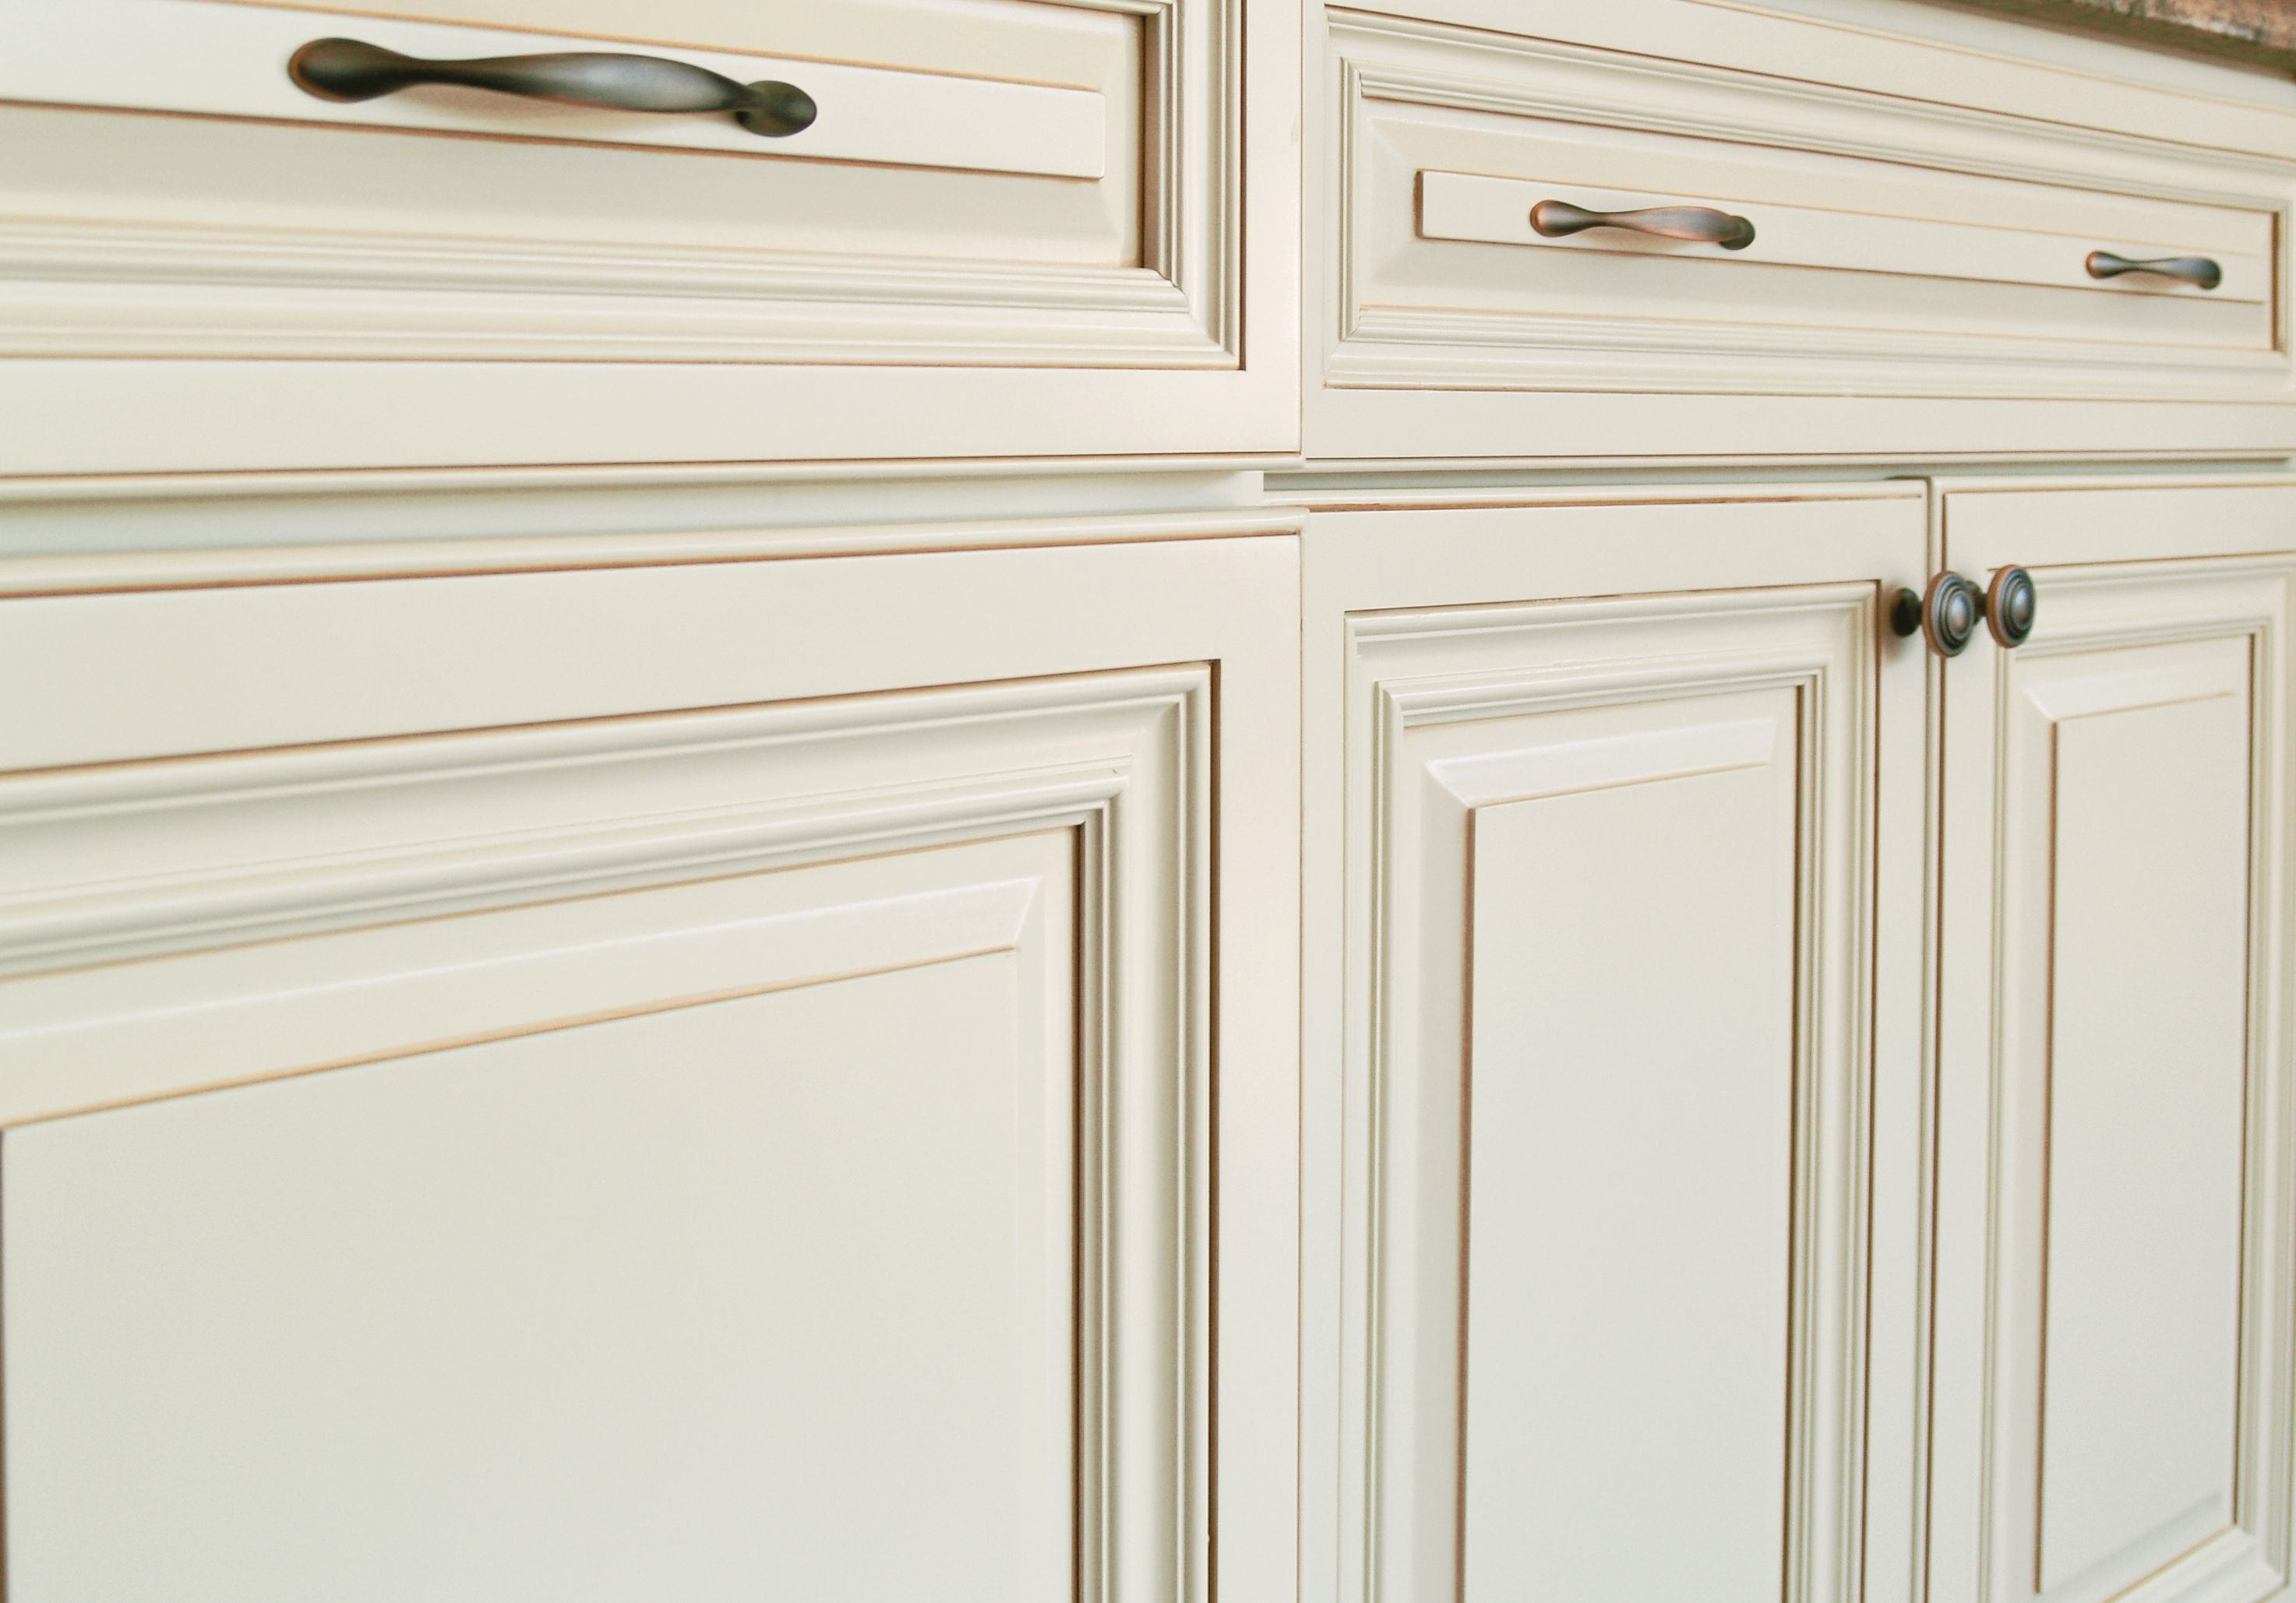 Renaissance Maple Raised Panel Painted Creamy Off White With Caramel Glaze Pair With Ca Kitchen Cabinet Design Off White Kitchen Cabinets Renaissance Kitchen